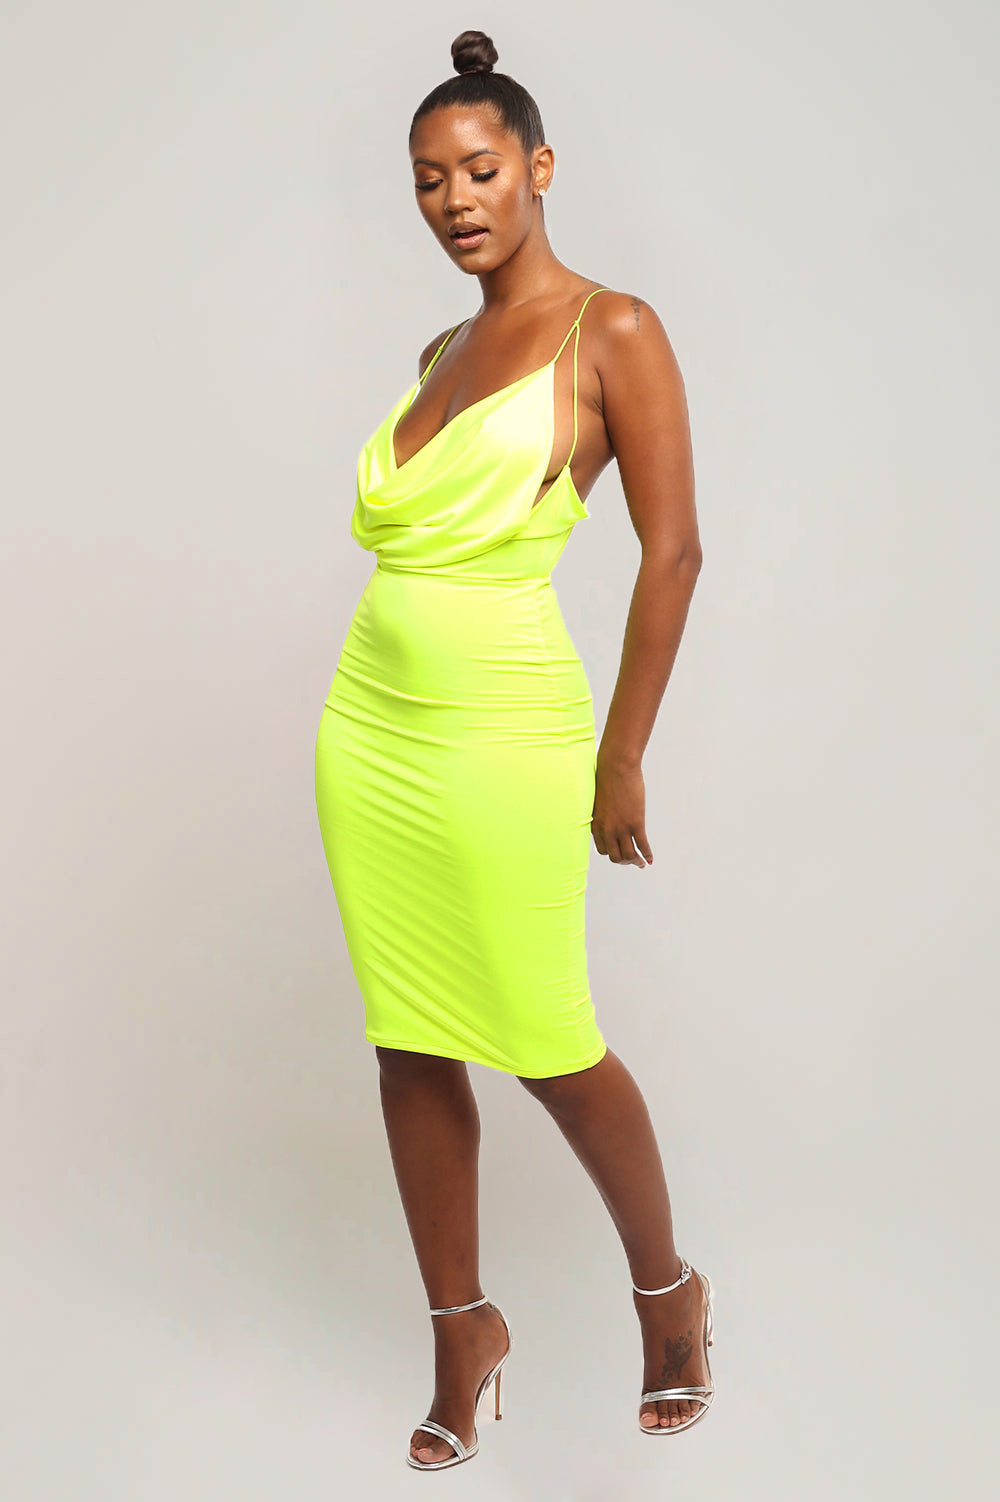 UTOPIA DRESS- Neon yellow